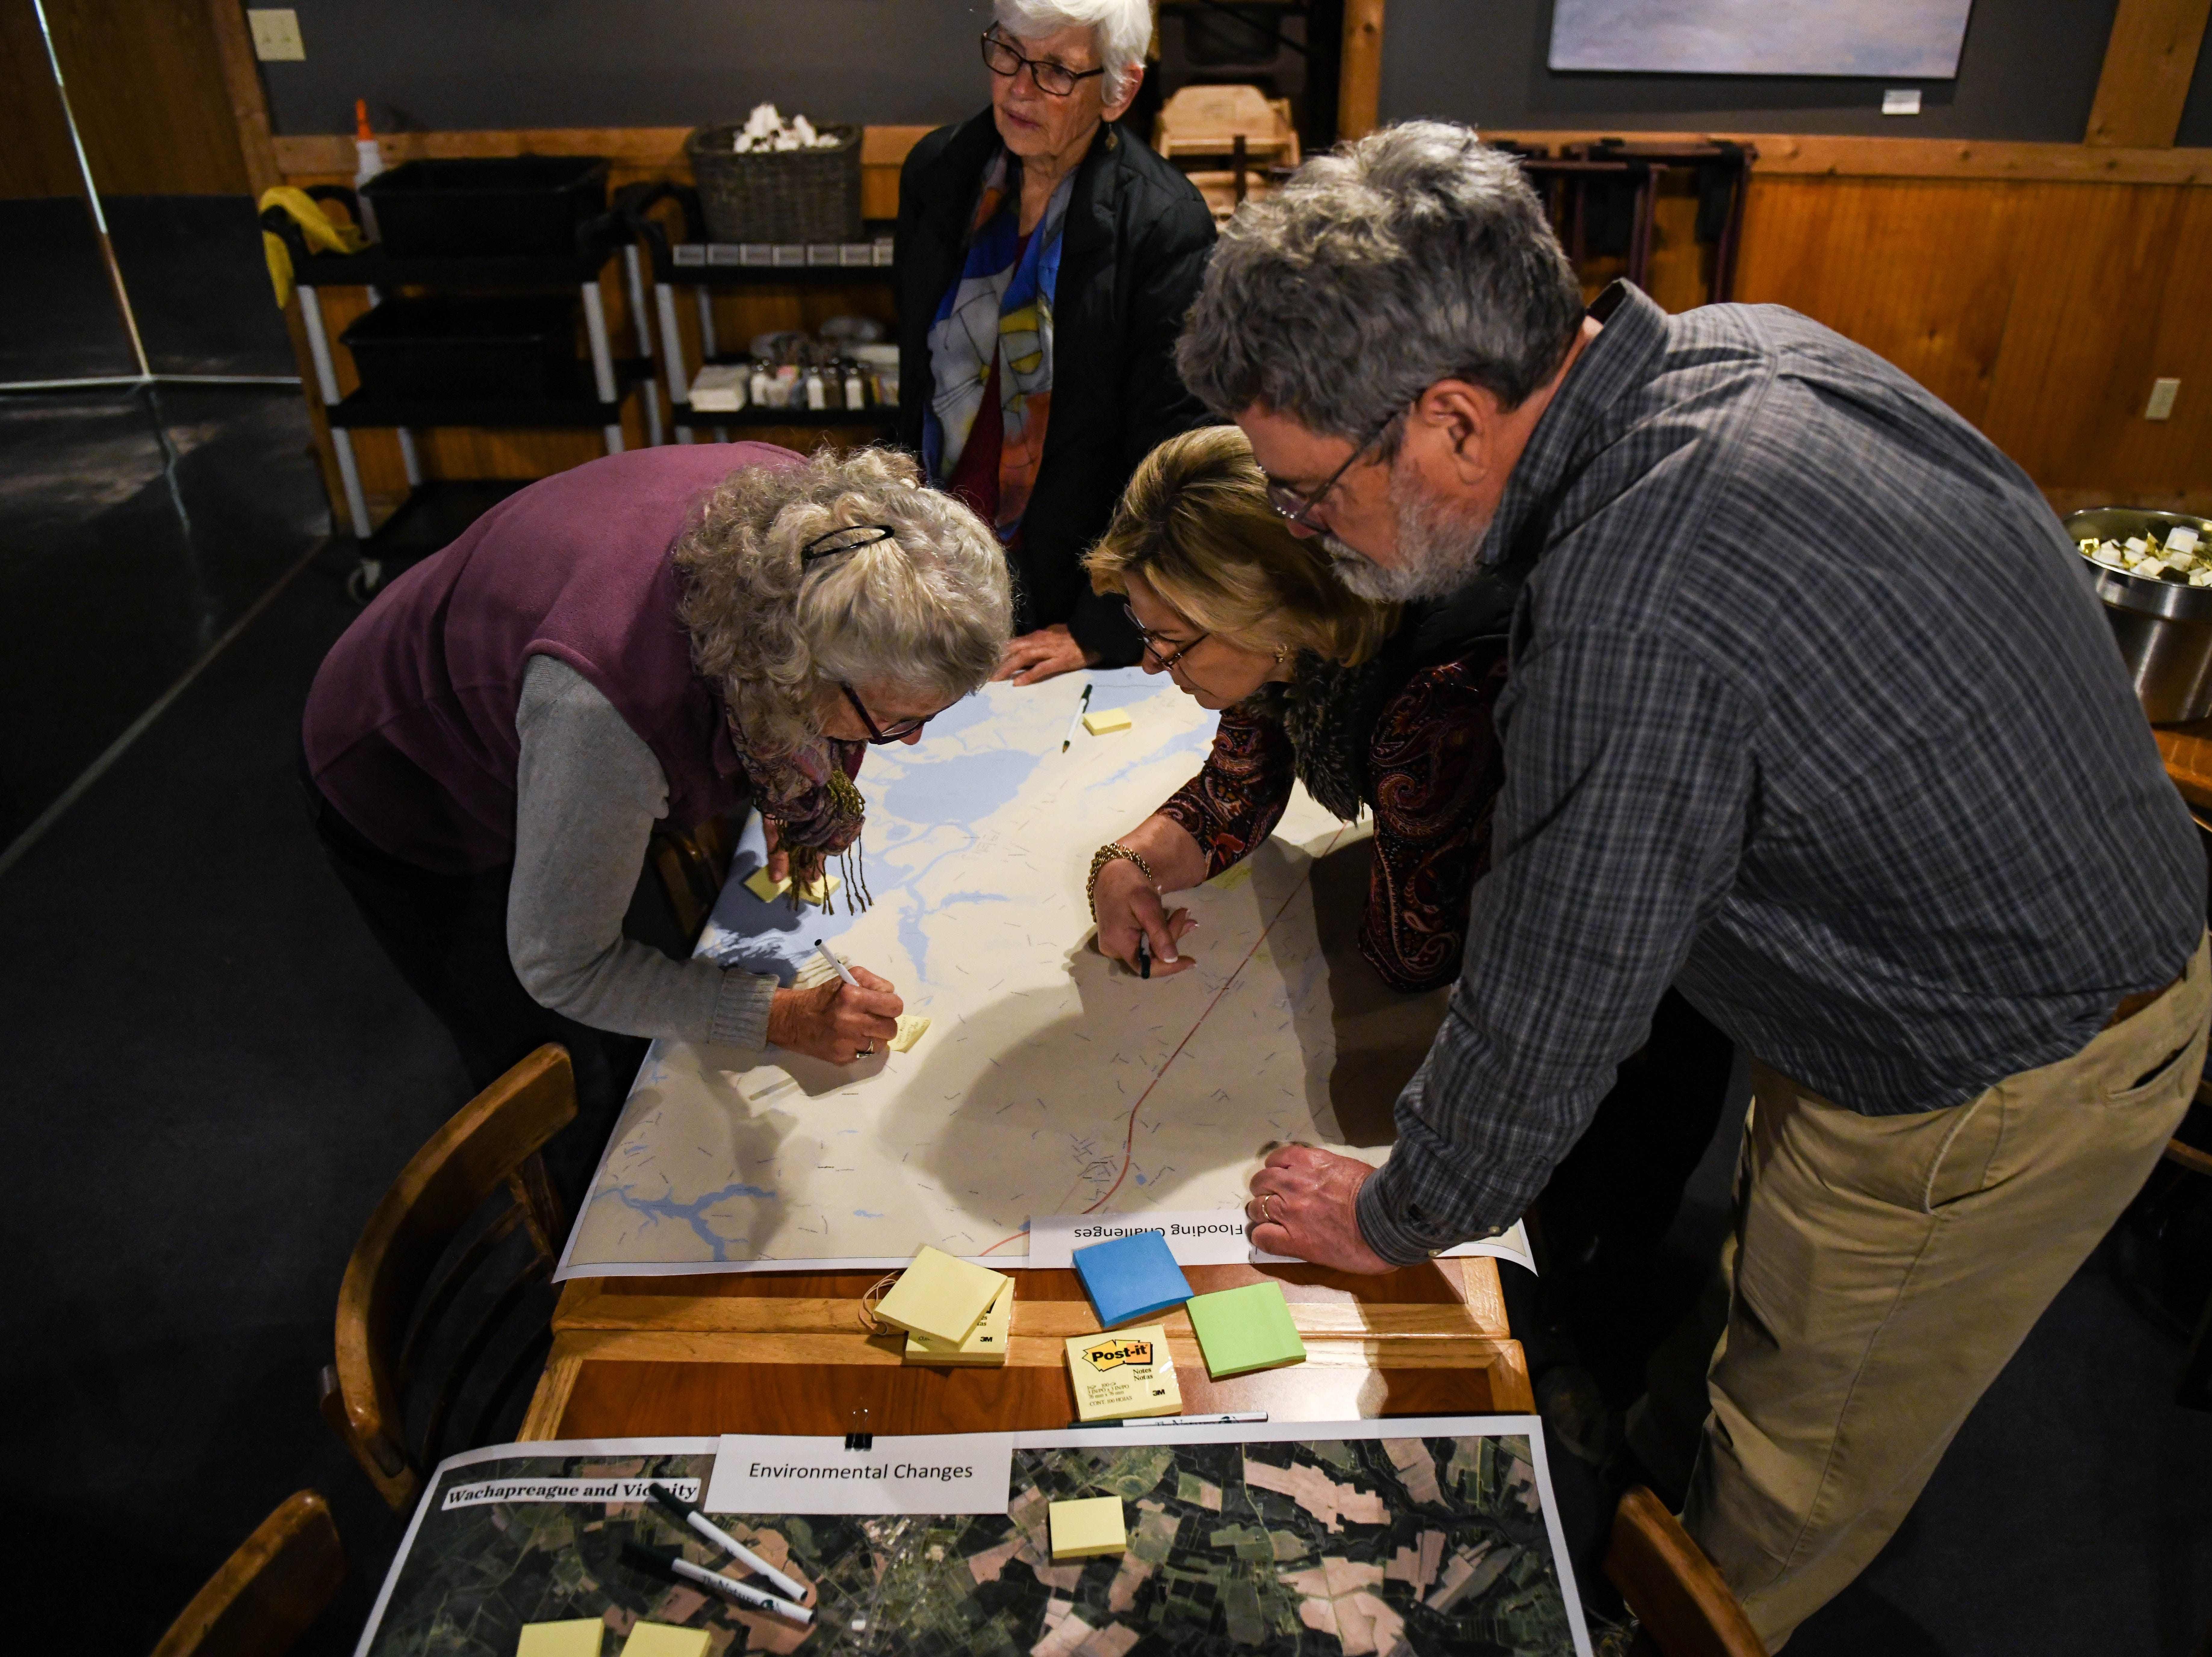 Local residents, Lloyd Johnston (left) and Dianne Nickel work with the Nature Conservancy's Jim McGowan to map local flooding at a community meeting in Wachapreague, Virginia on Monday, March 4, 2019. Locals were asked to put informational post-it notes on roads where they had seen flooding.